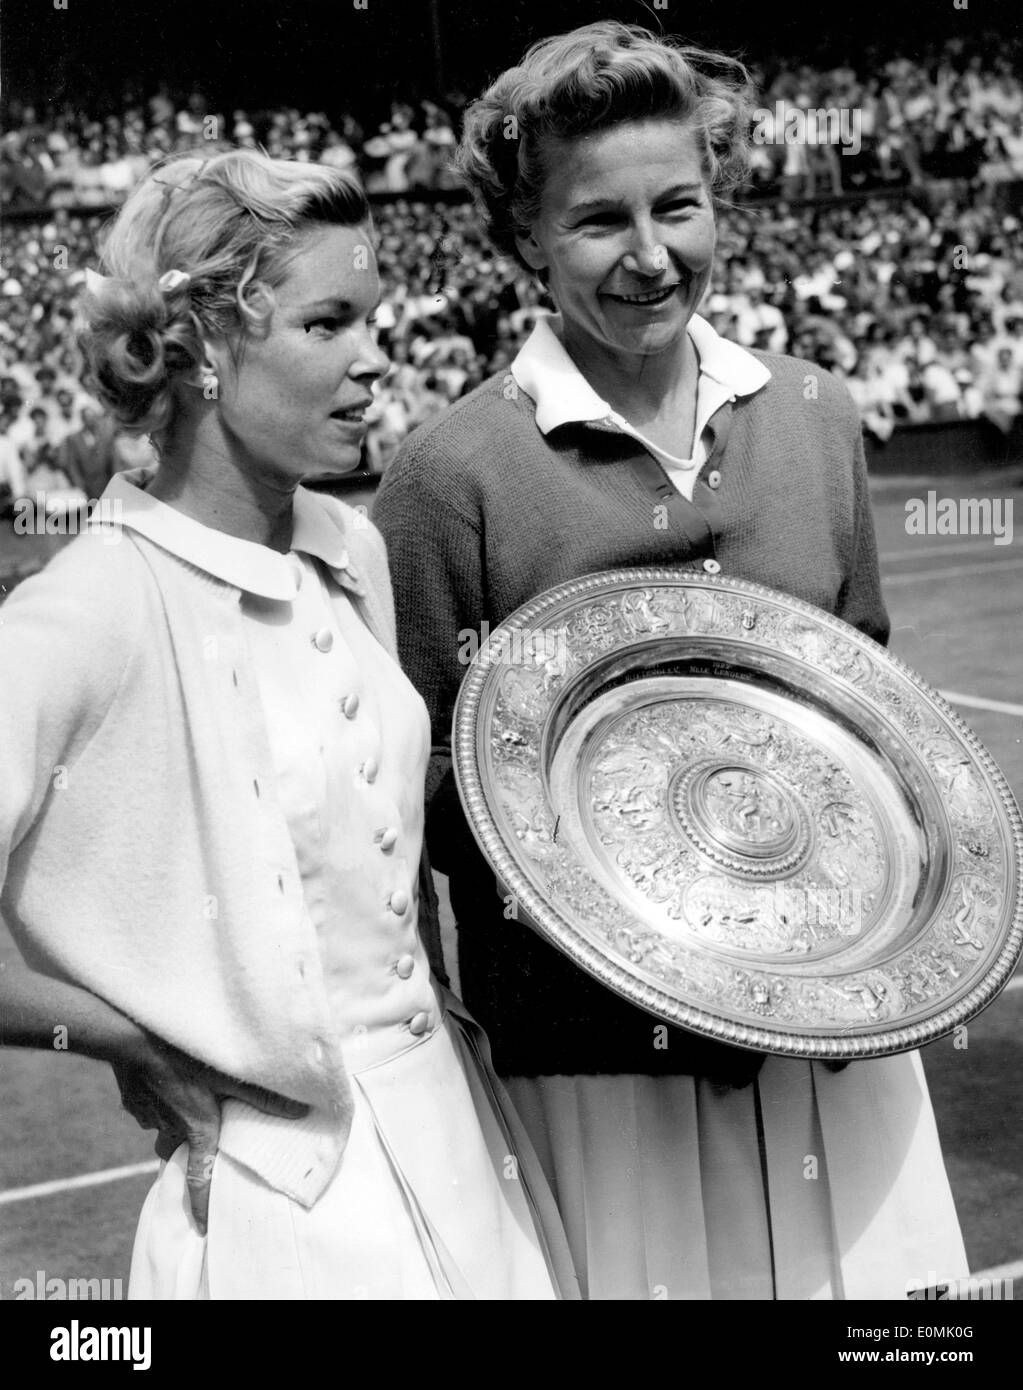 Tennis Champ Louise Brough after winning a match at Wimbledon